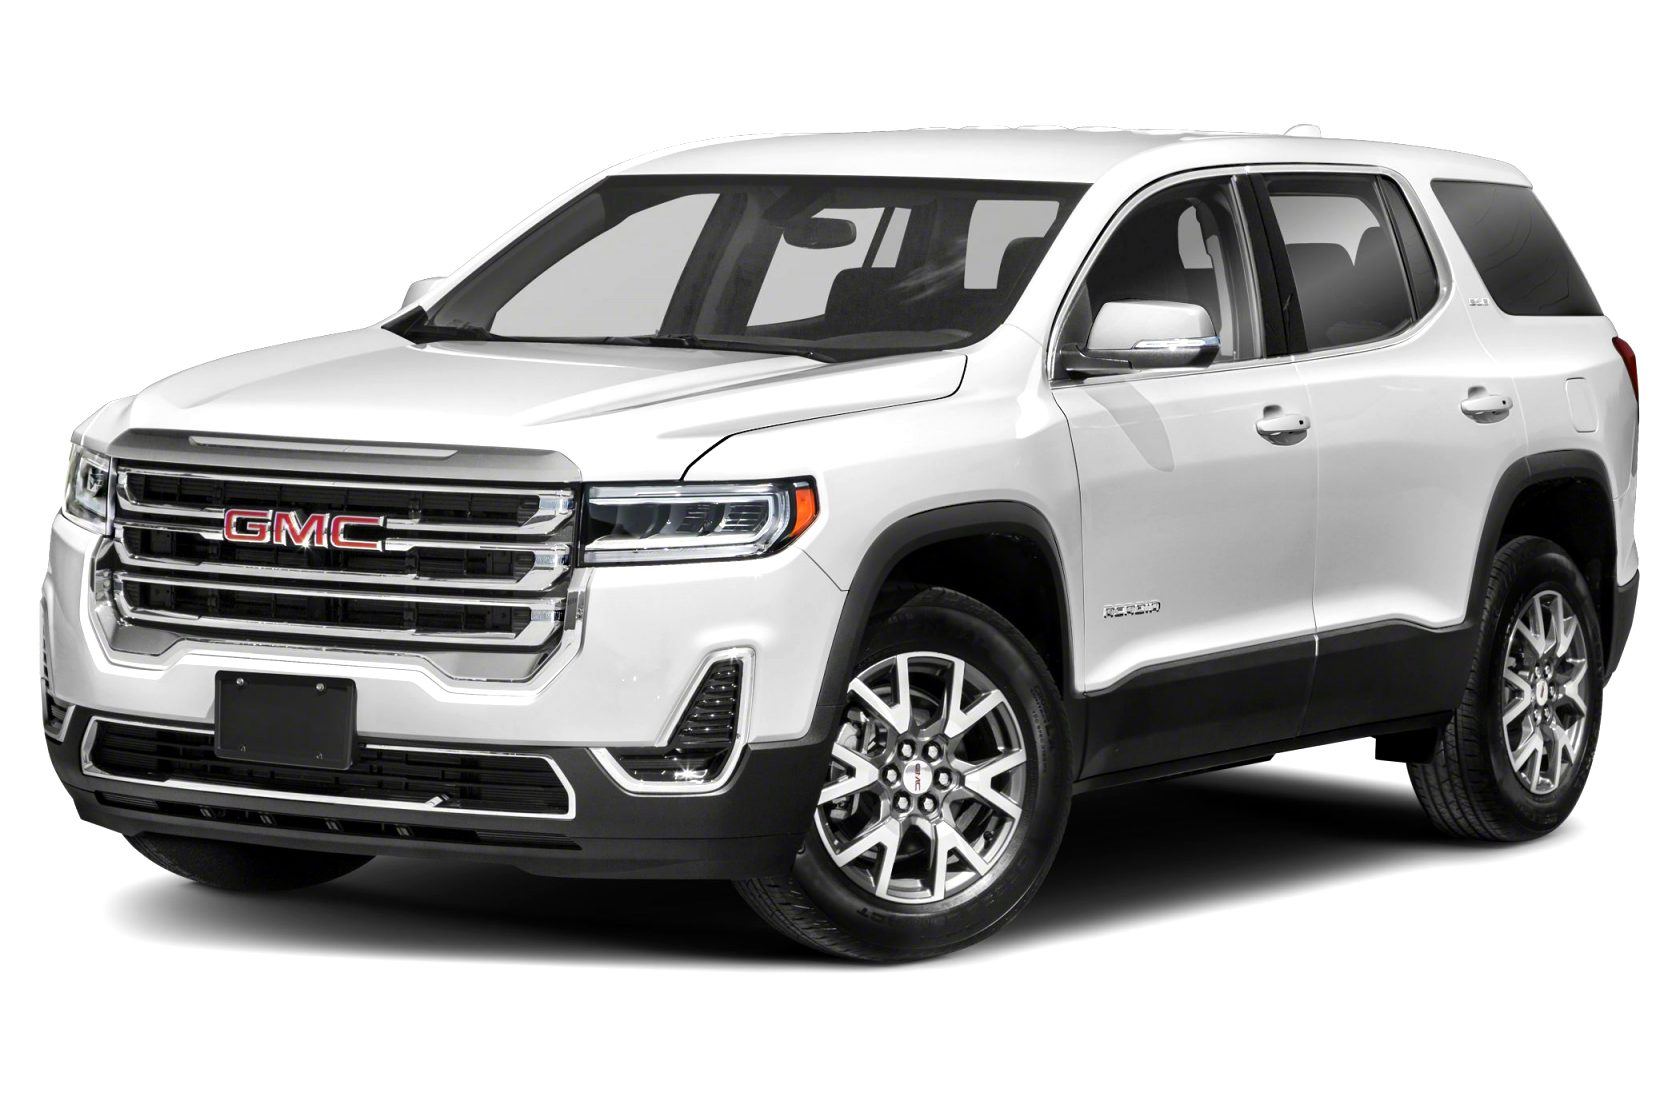 2021 GMC mpg Pictures